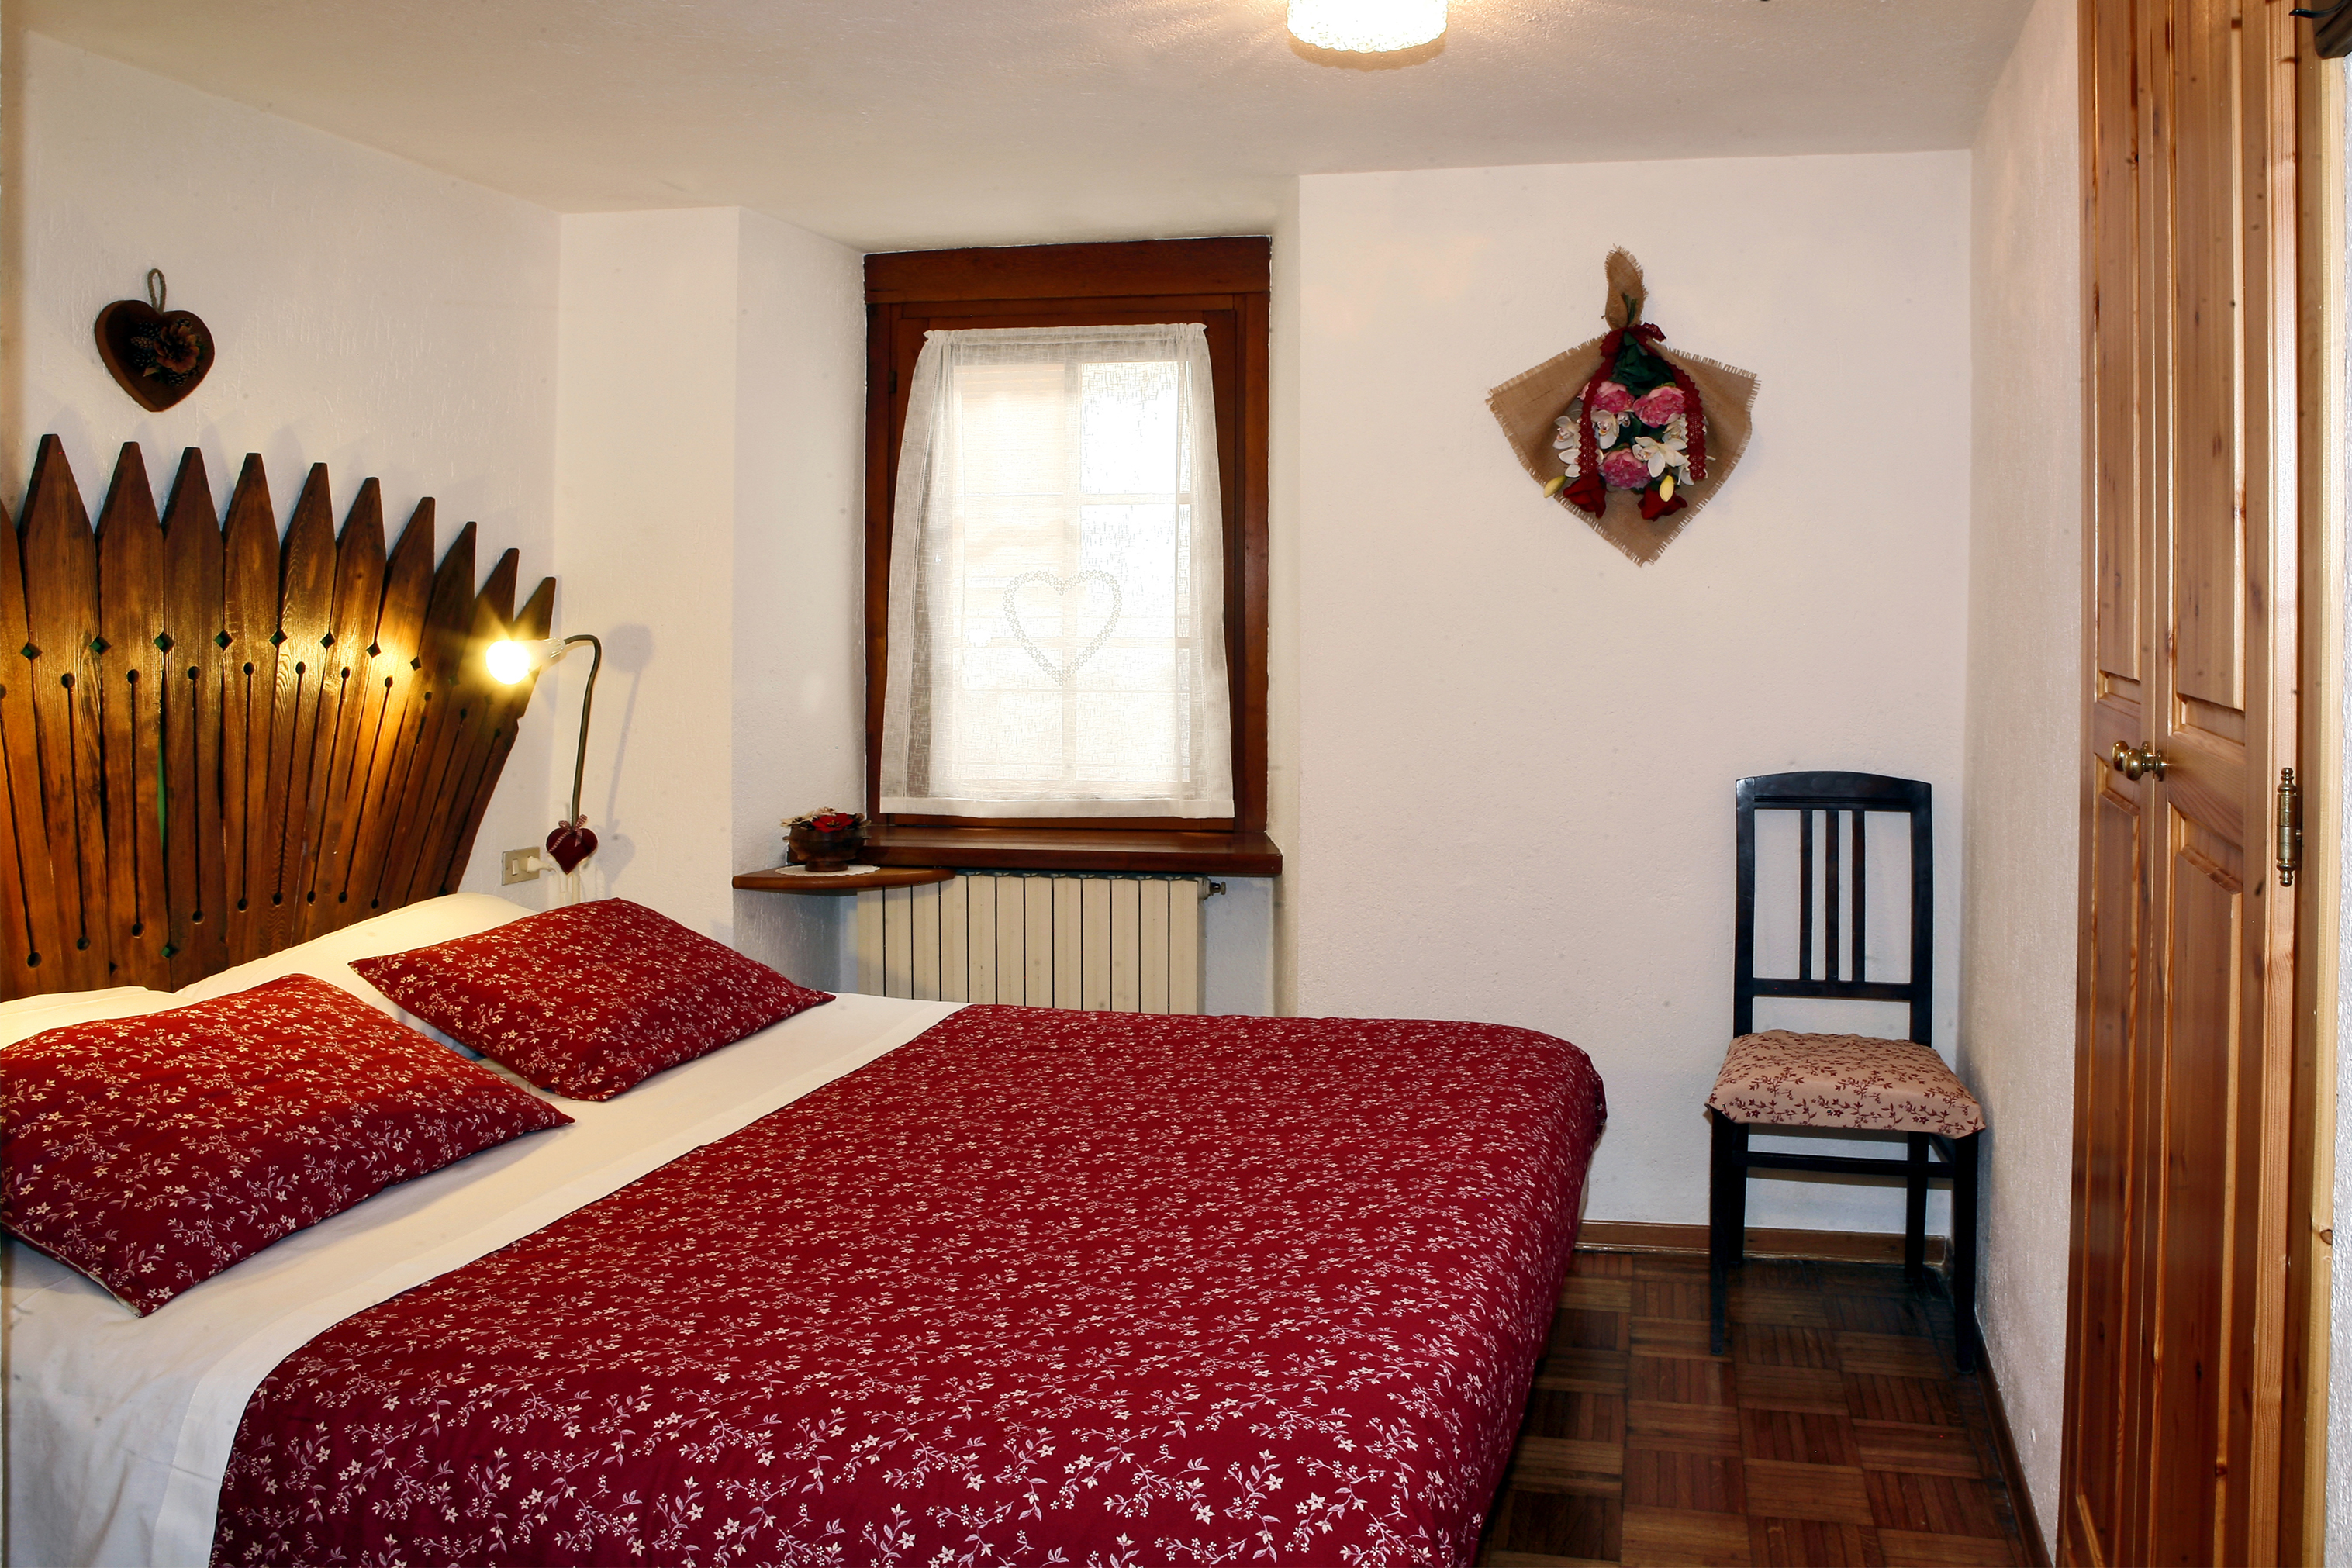 B&B Flocon de Neige - B&B Morgex